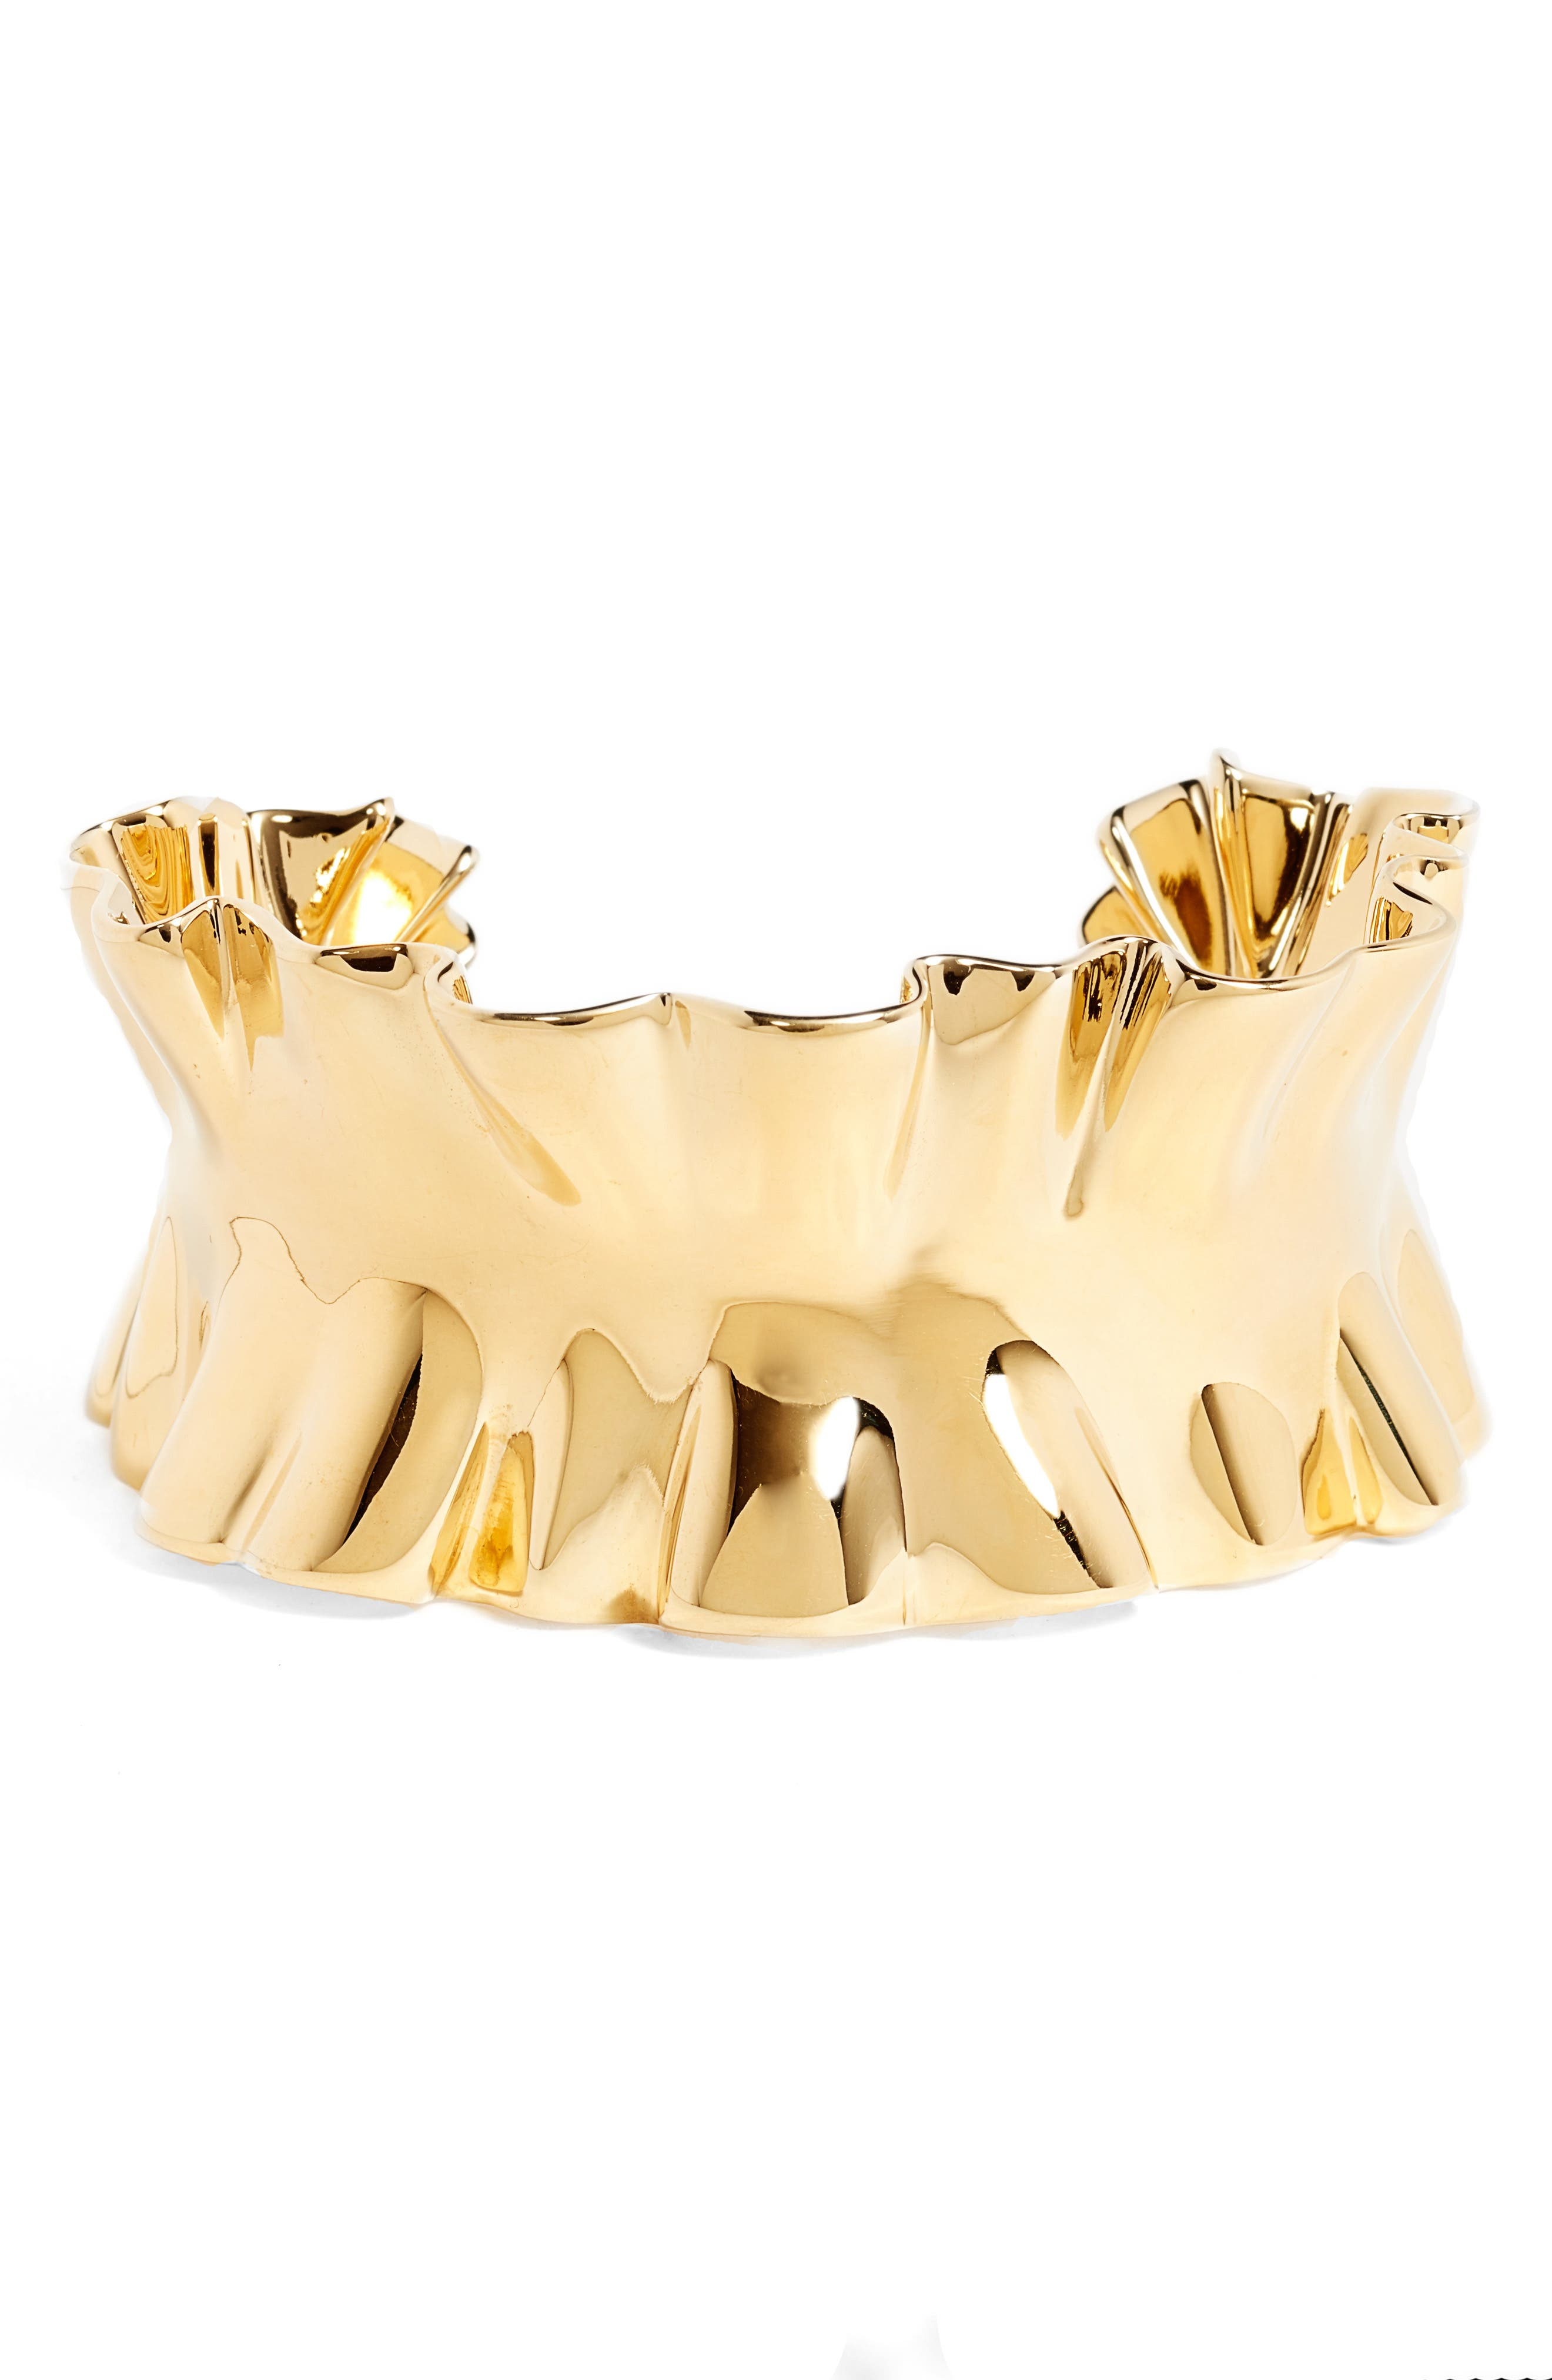 Alternate Image 1 Selected - kate spade new york heavy metals statement ruffle cuff